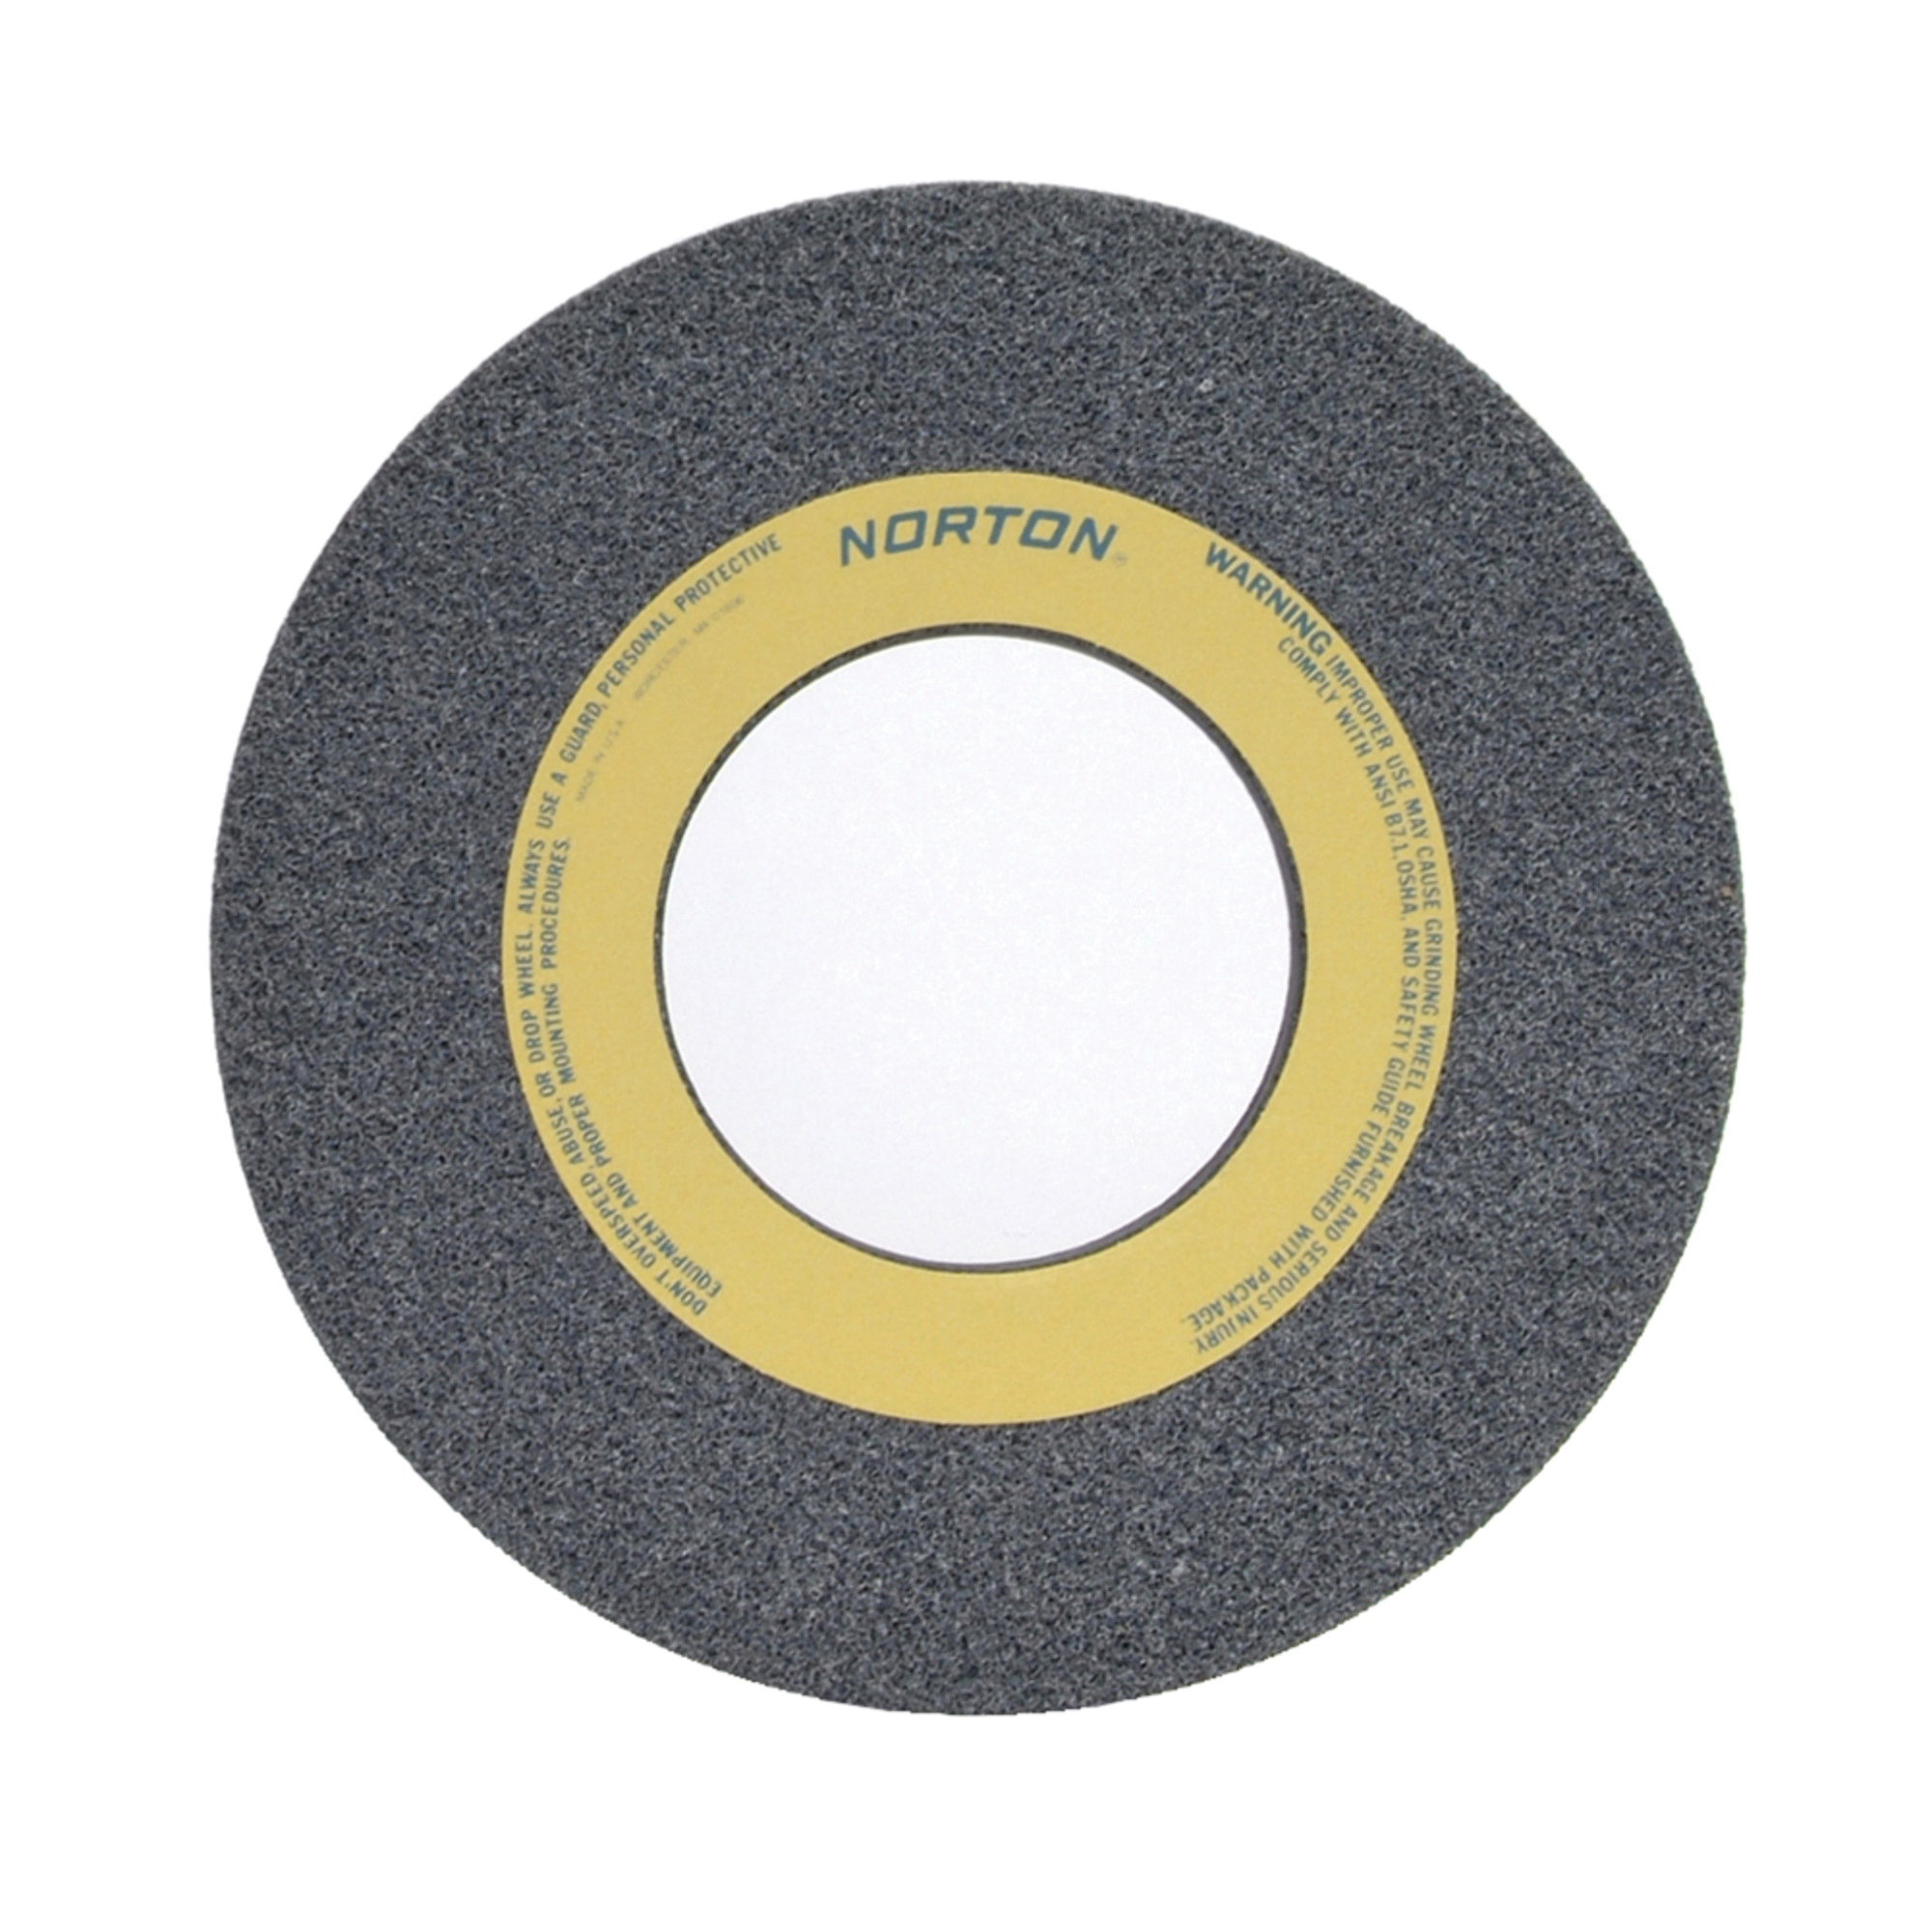 Norton® 66253262686 32A Straight Toolroom Wheel, 12 in Dia x 1 in THK, 5 in Center Hole, 60 Grit, Aluminum Oxide Abrasive